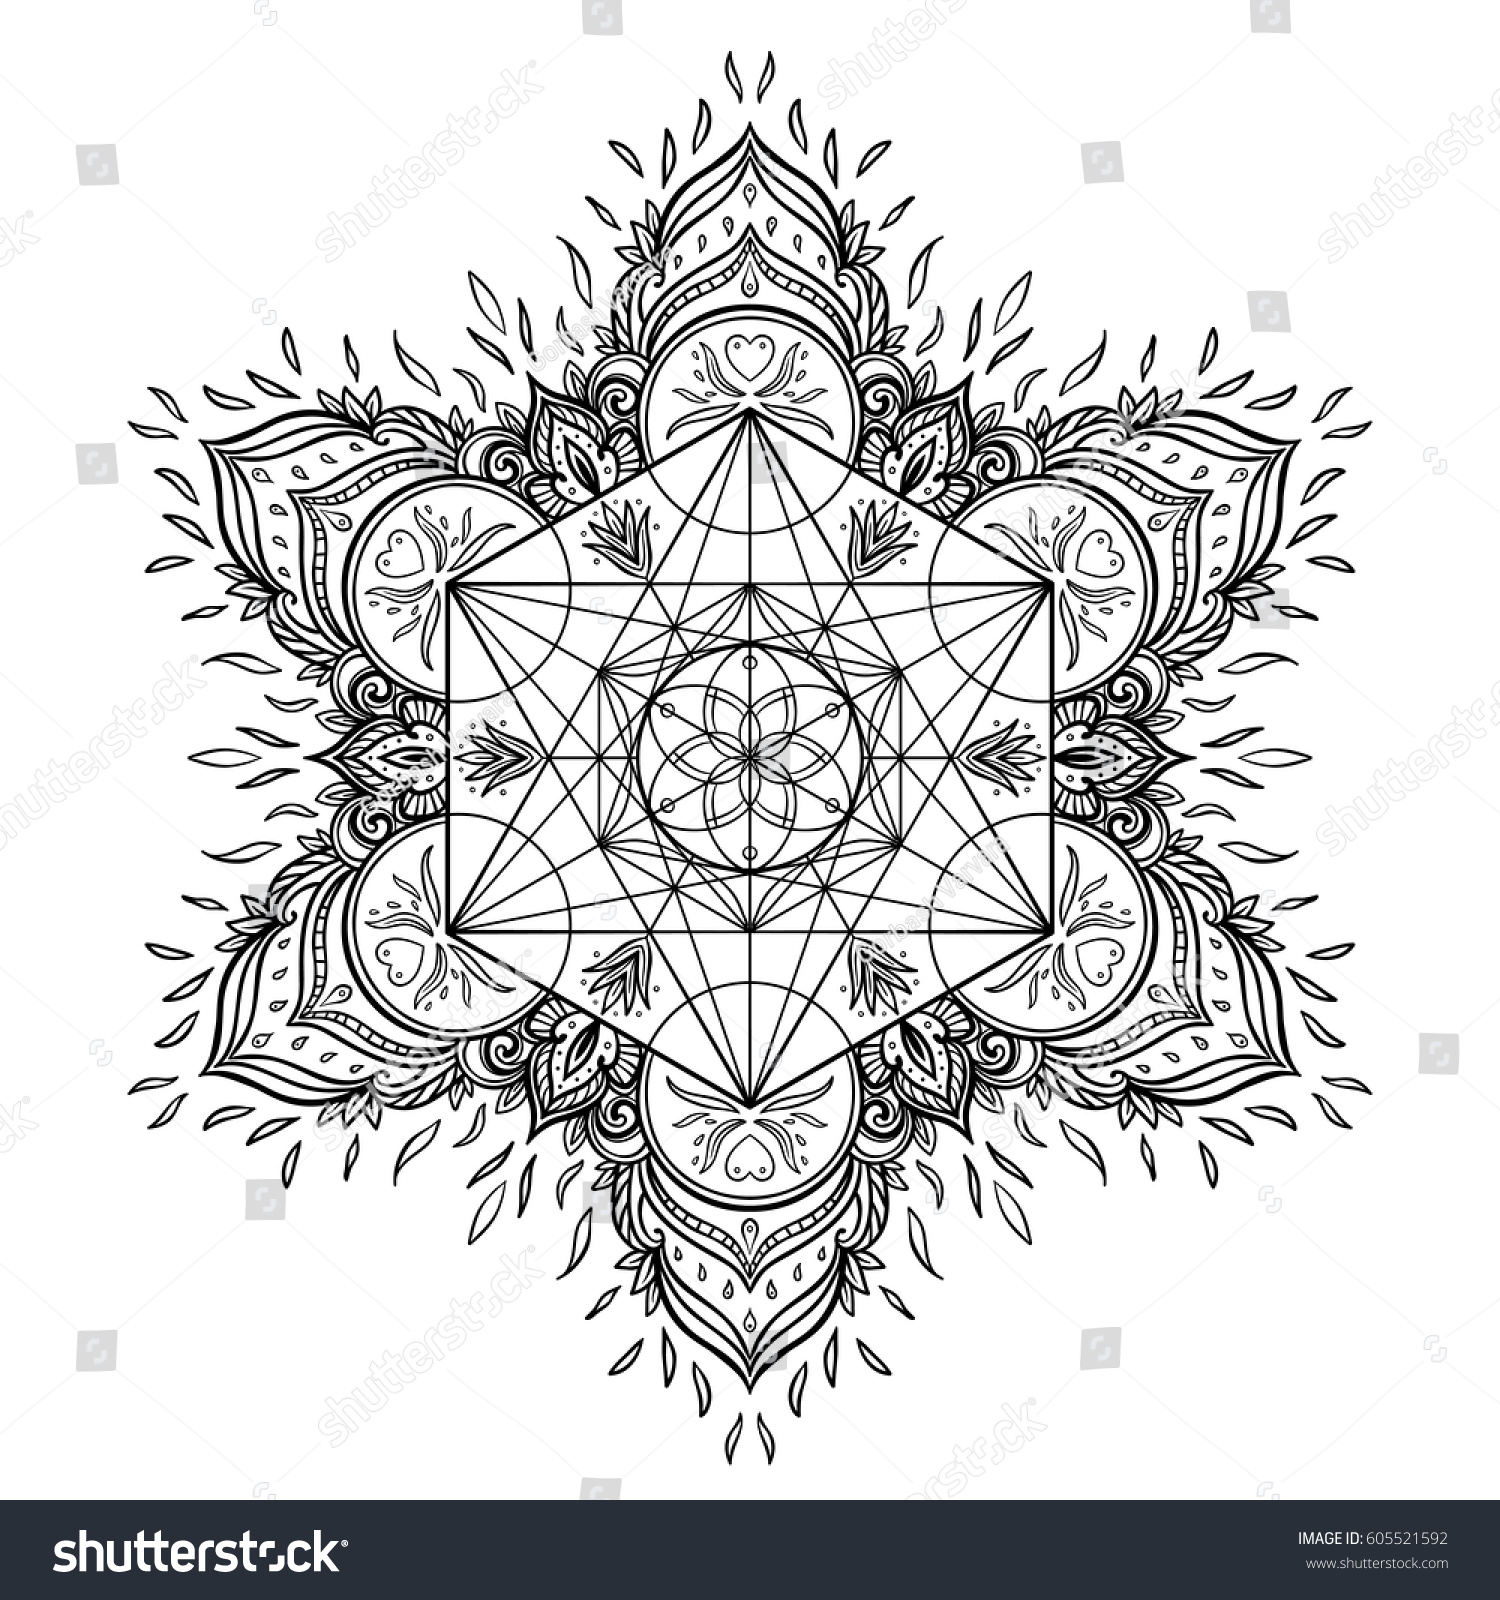 Decorative mandala round pattern sacred geometry stock vector decorative mandala round pattern with sacred geometry element metatron cube powerful symbol flower of biocorpaavc